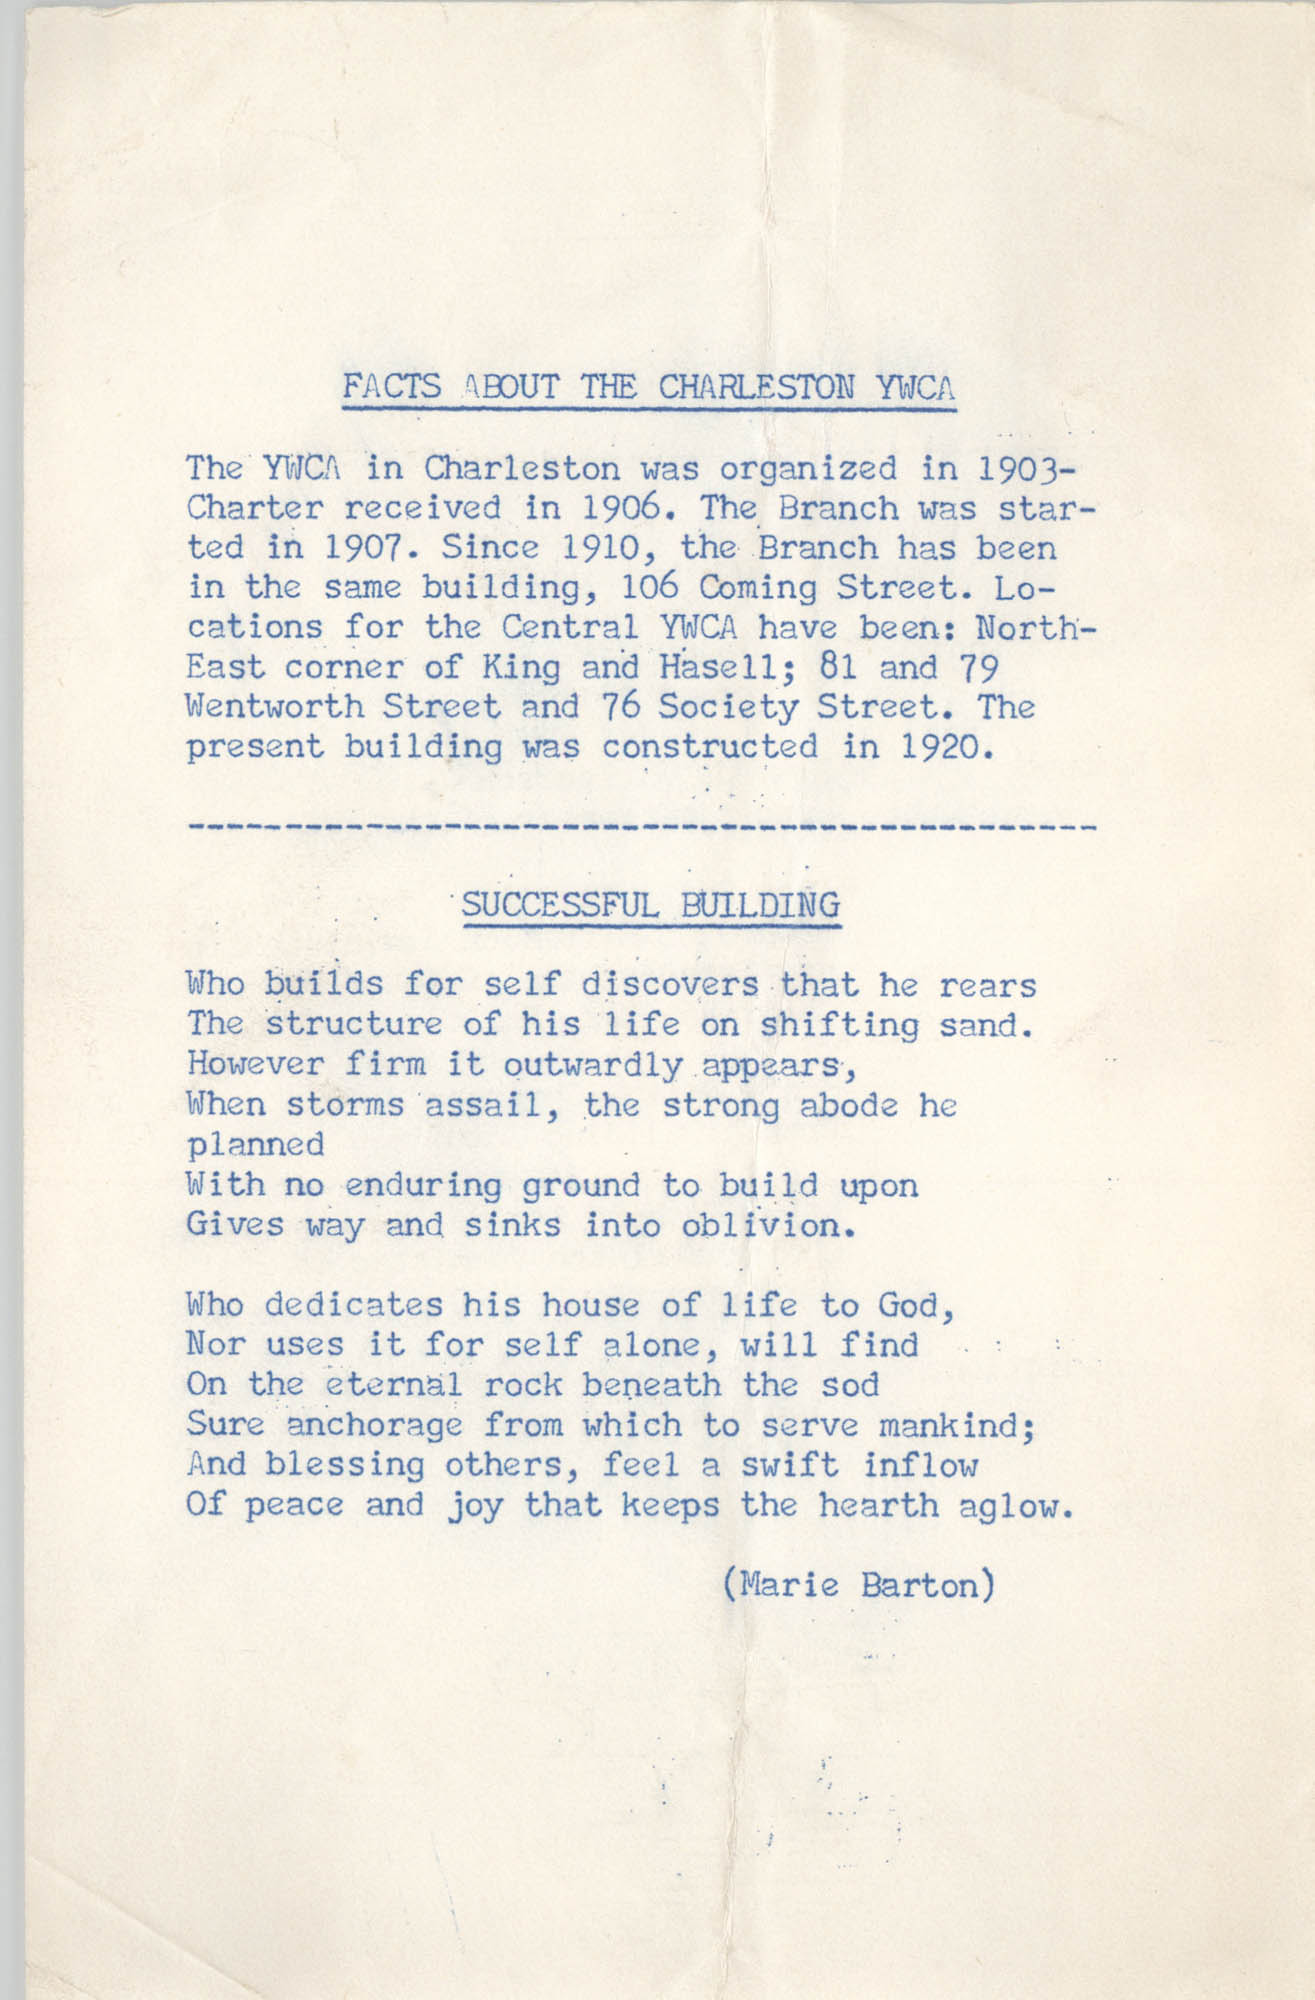 Coming Street Y.W.C.A. Scrapbook, 1953-1957, Page 134